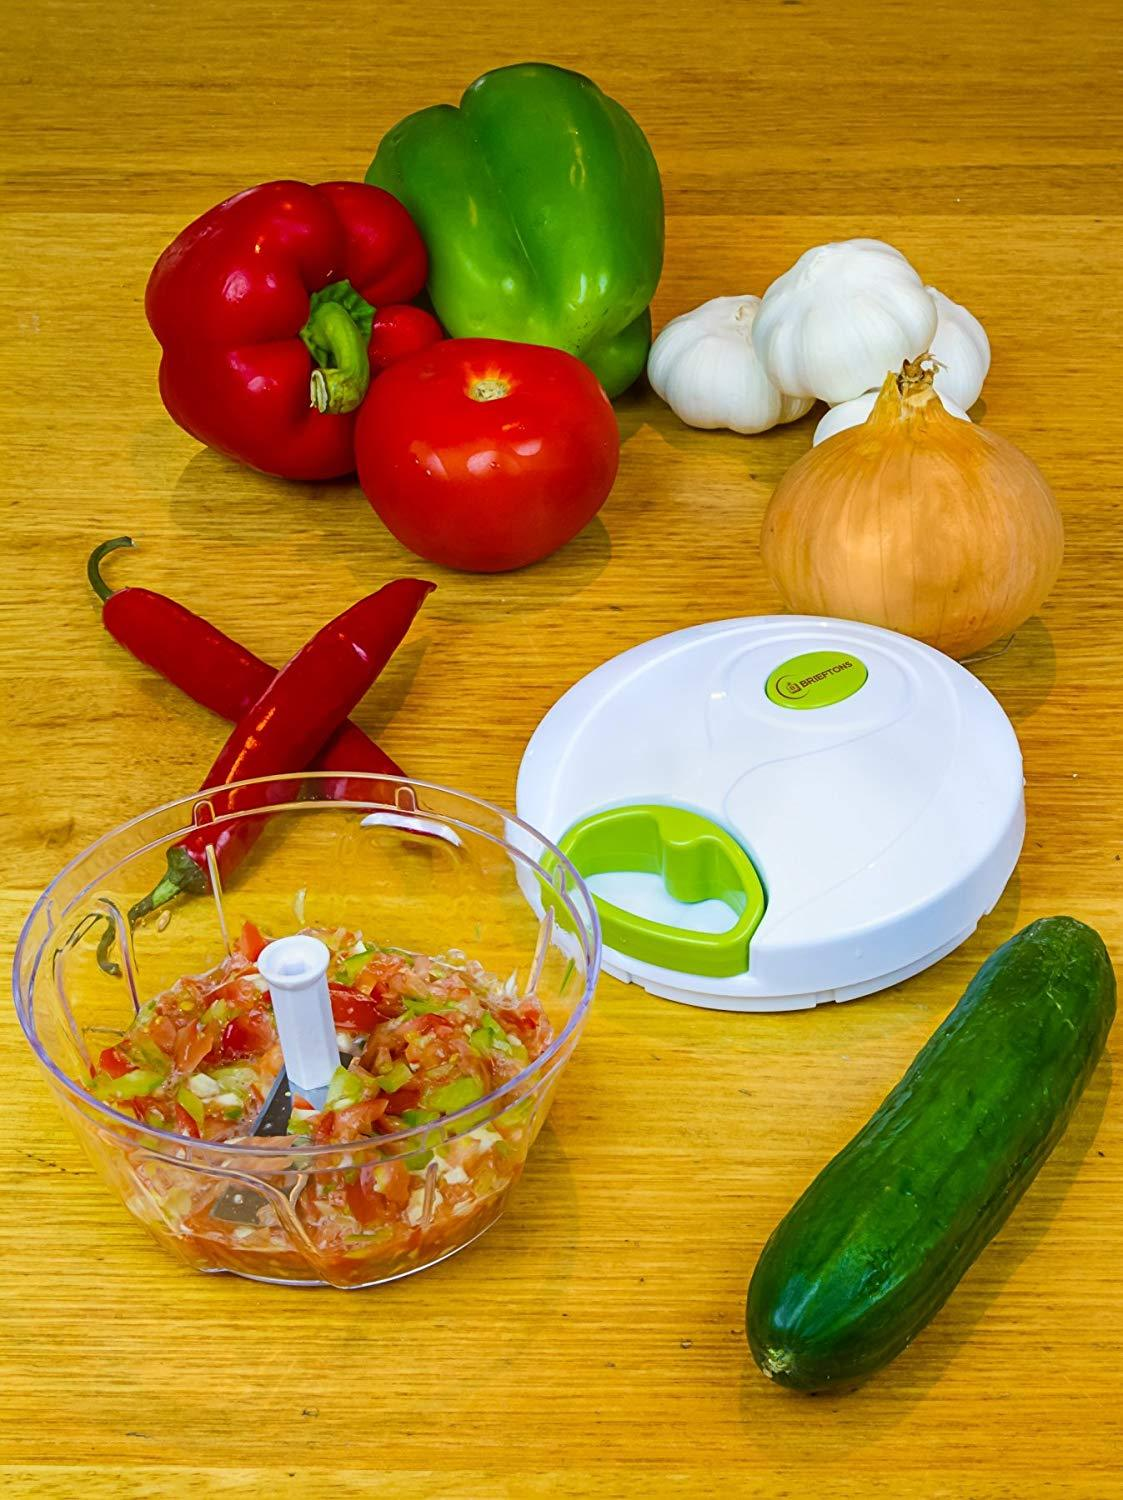 Compact & Powerful Hand Held Vegetable Chopper